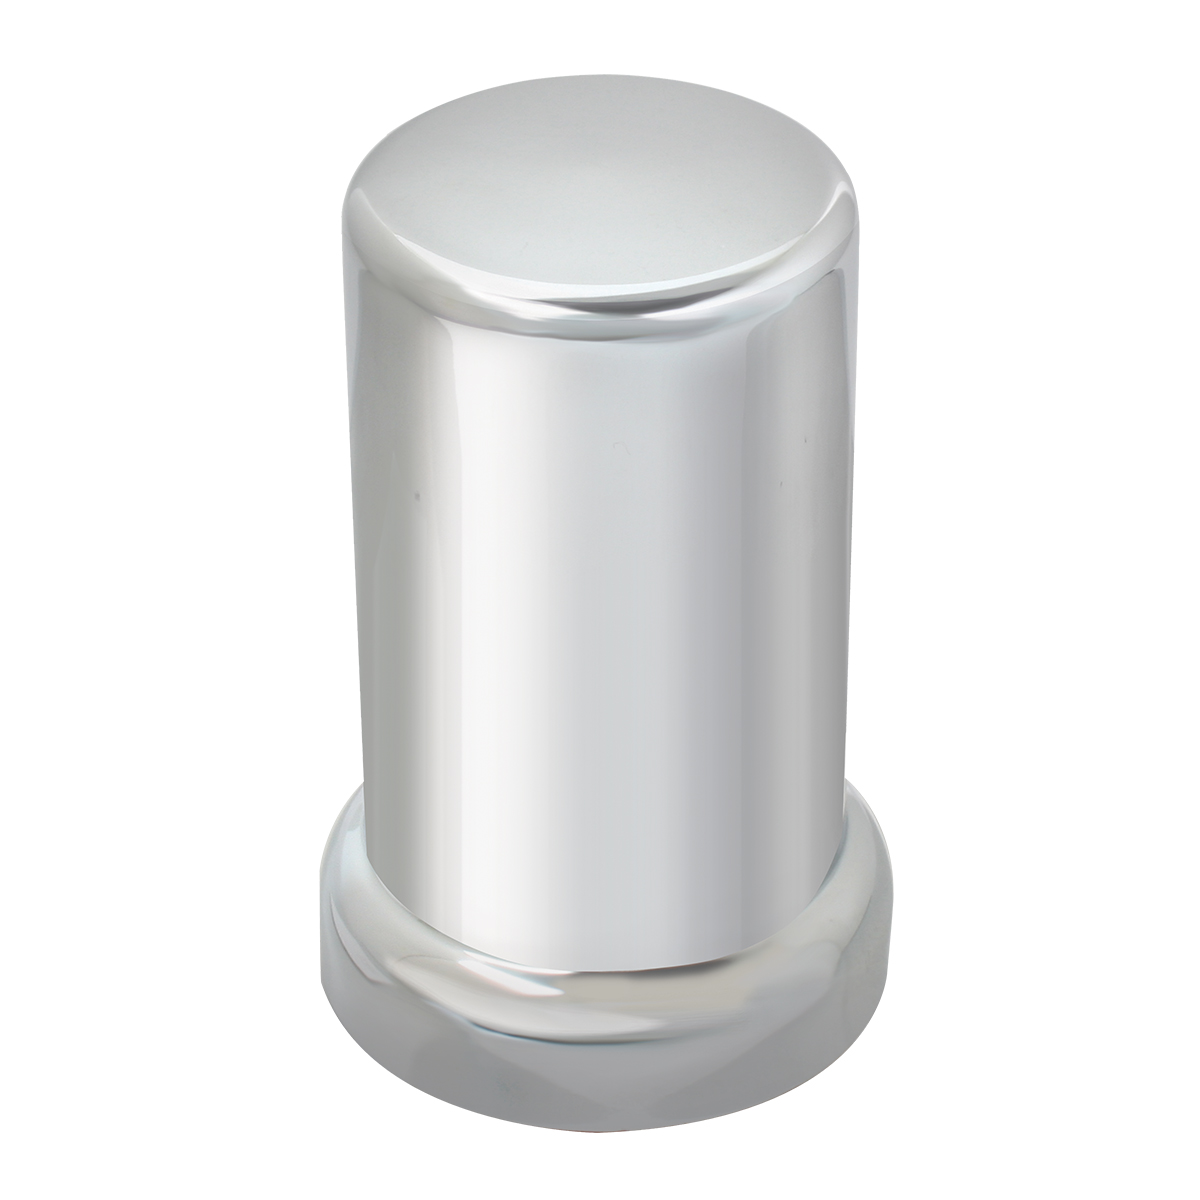 "Tube Chrome Plastic Lug Nut Cover 3-3/8"" (H)"